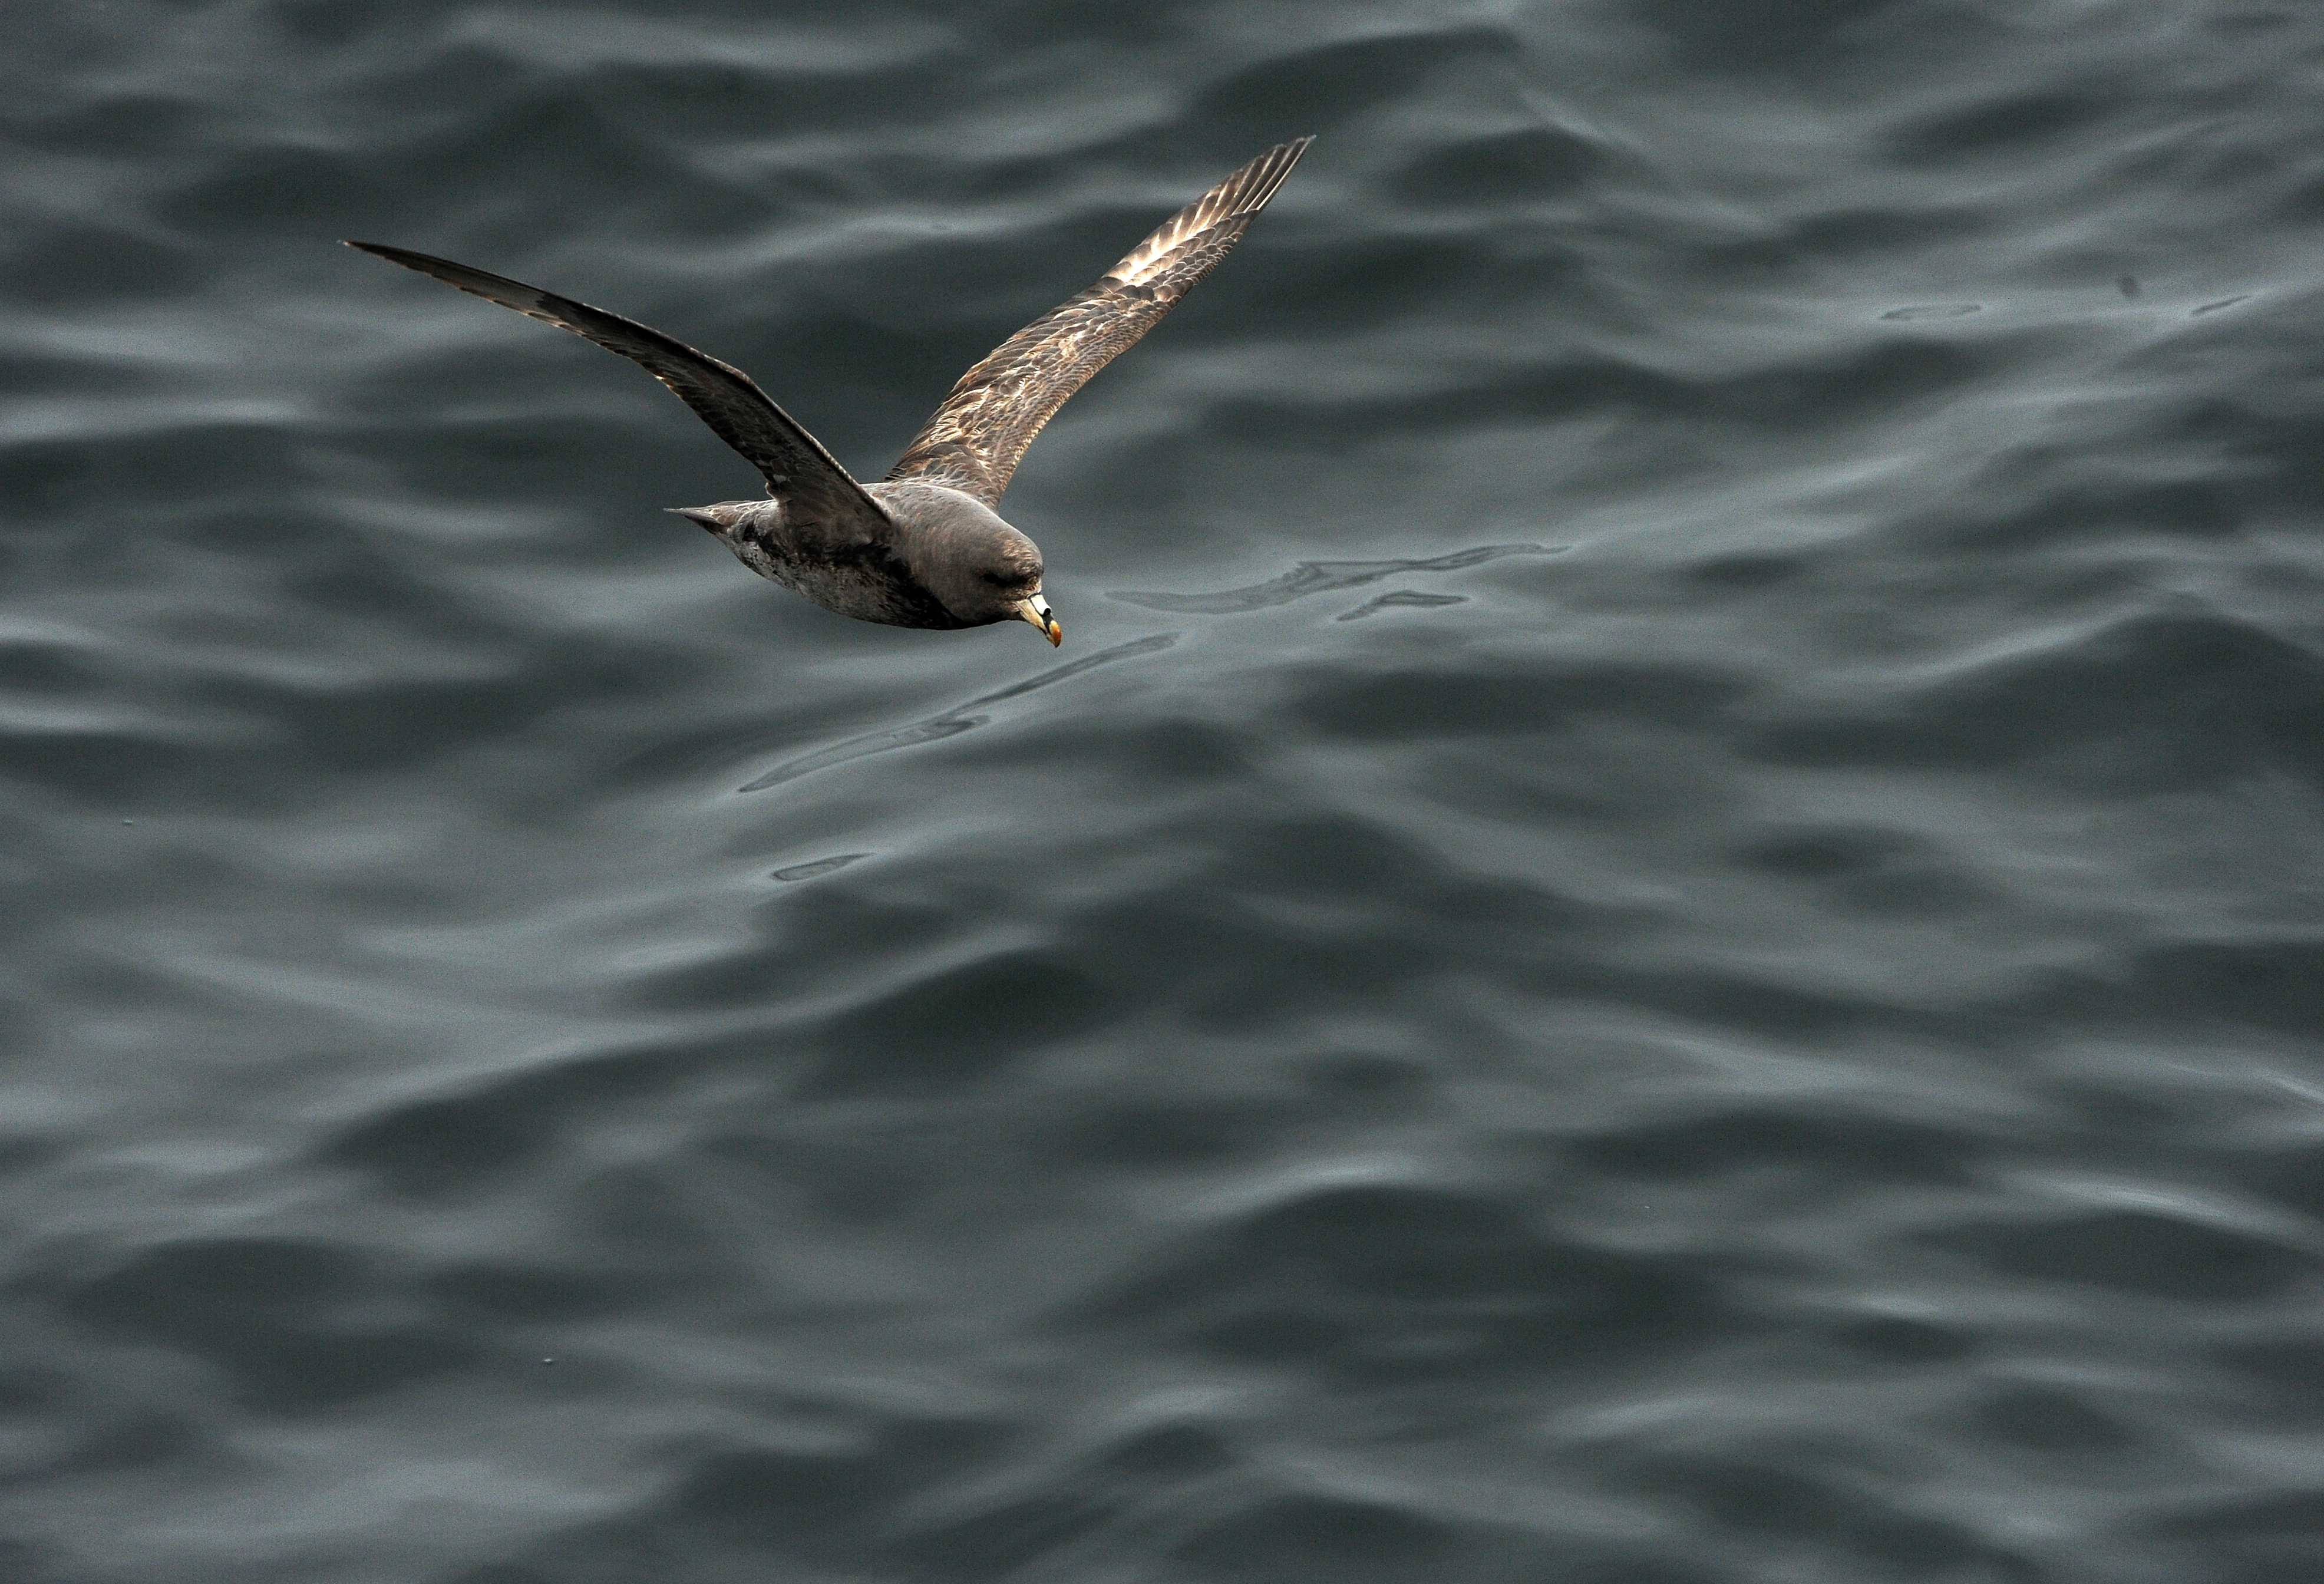 A northern fulmar flies just above the water as the US Fish and Wildlife Service research boat R/V Tiglax travels among the Aleutian Islands on Friday, June 5, 2015. Scientists on the R/V Tiglax conduct research in the Alaska Maritime National Wildlife Refuge. (Bob Hallinen / Alaska Dispatch News)